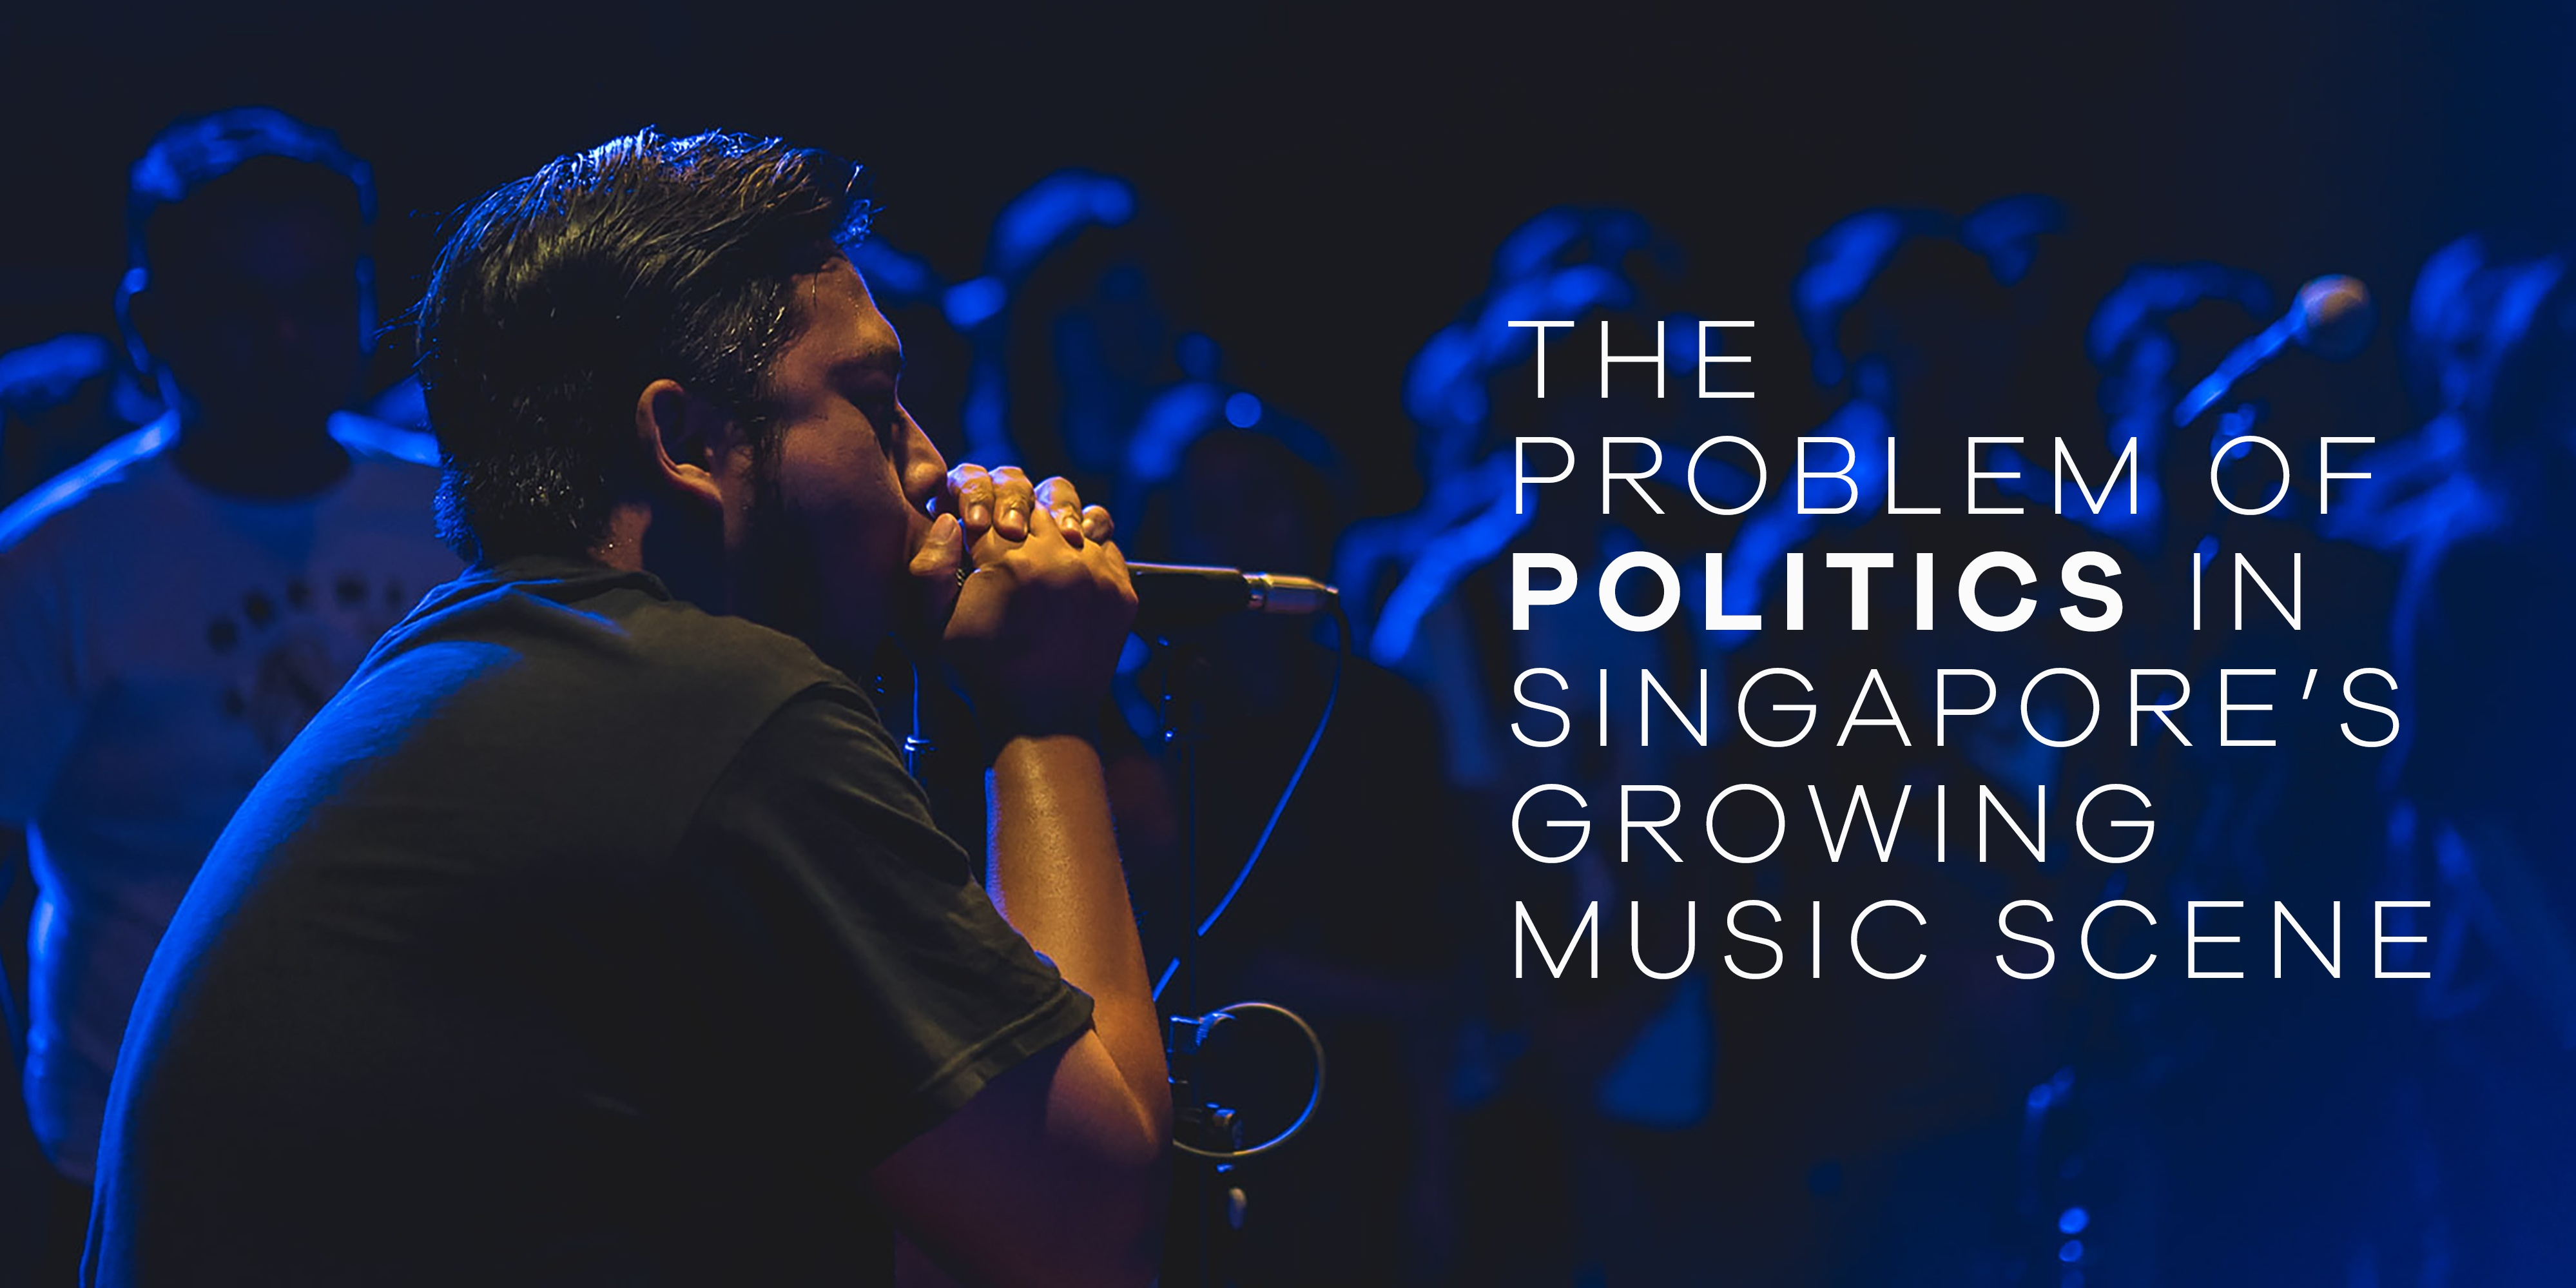 The problem of politics in Singapore's growing music scene